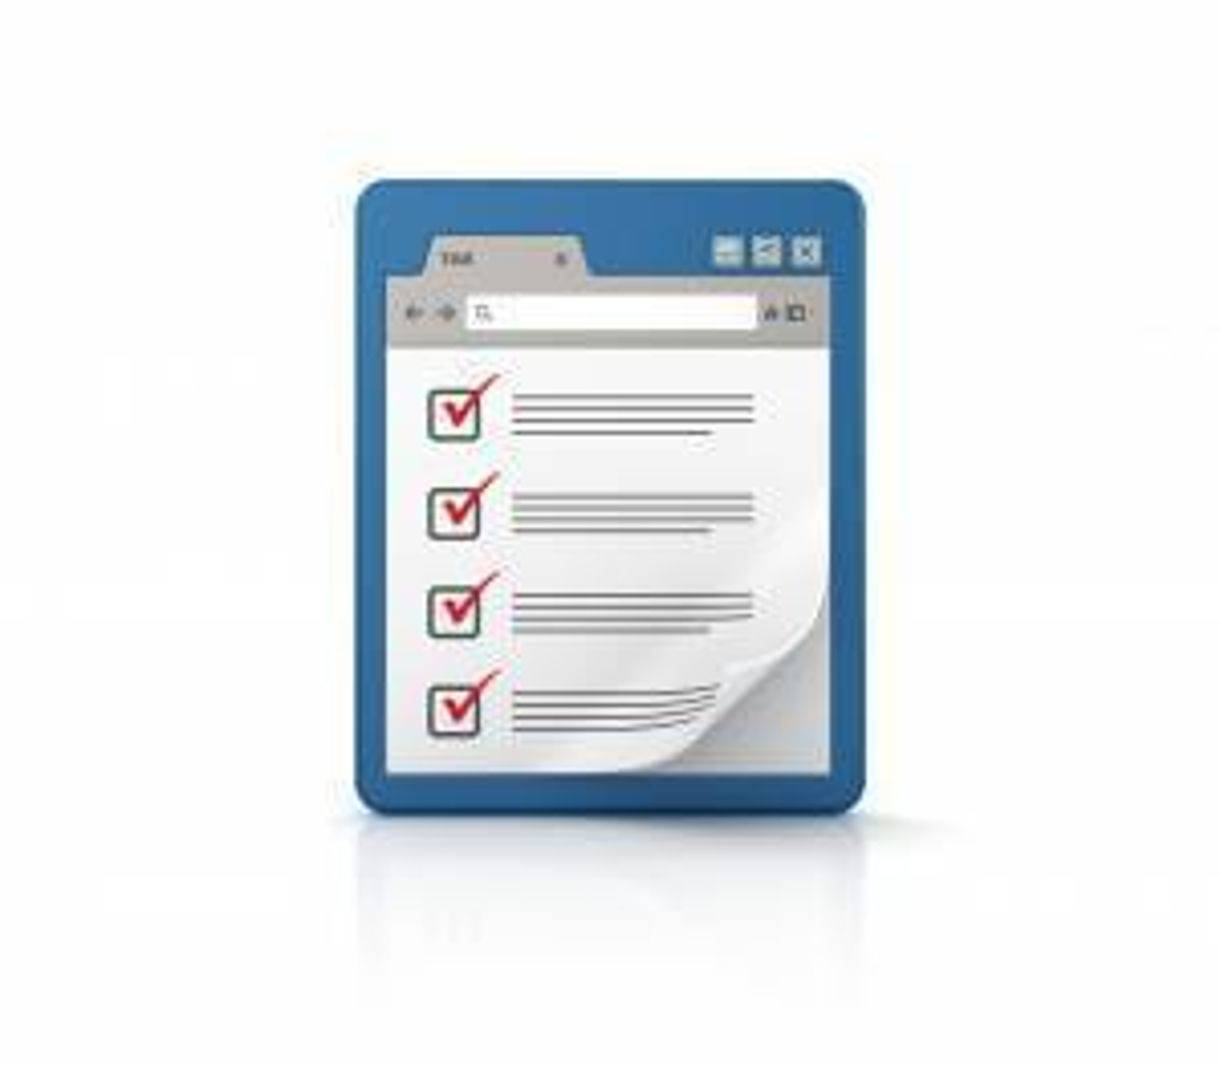 graphic illustration of a web browser with a checklist